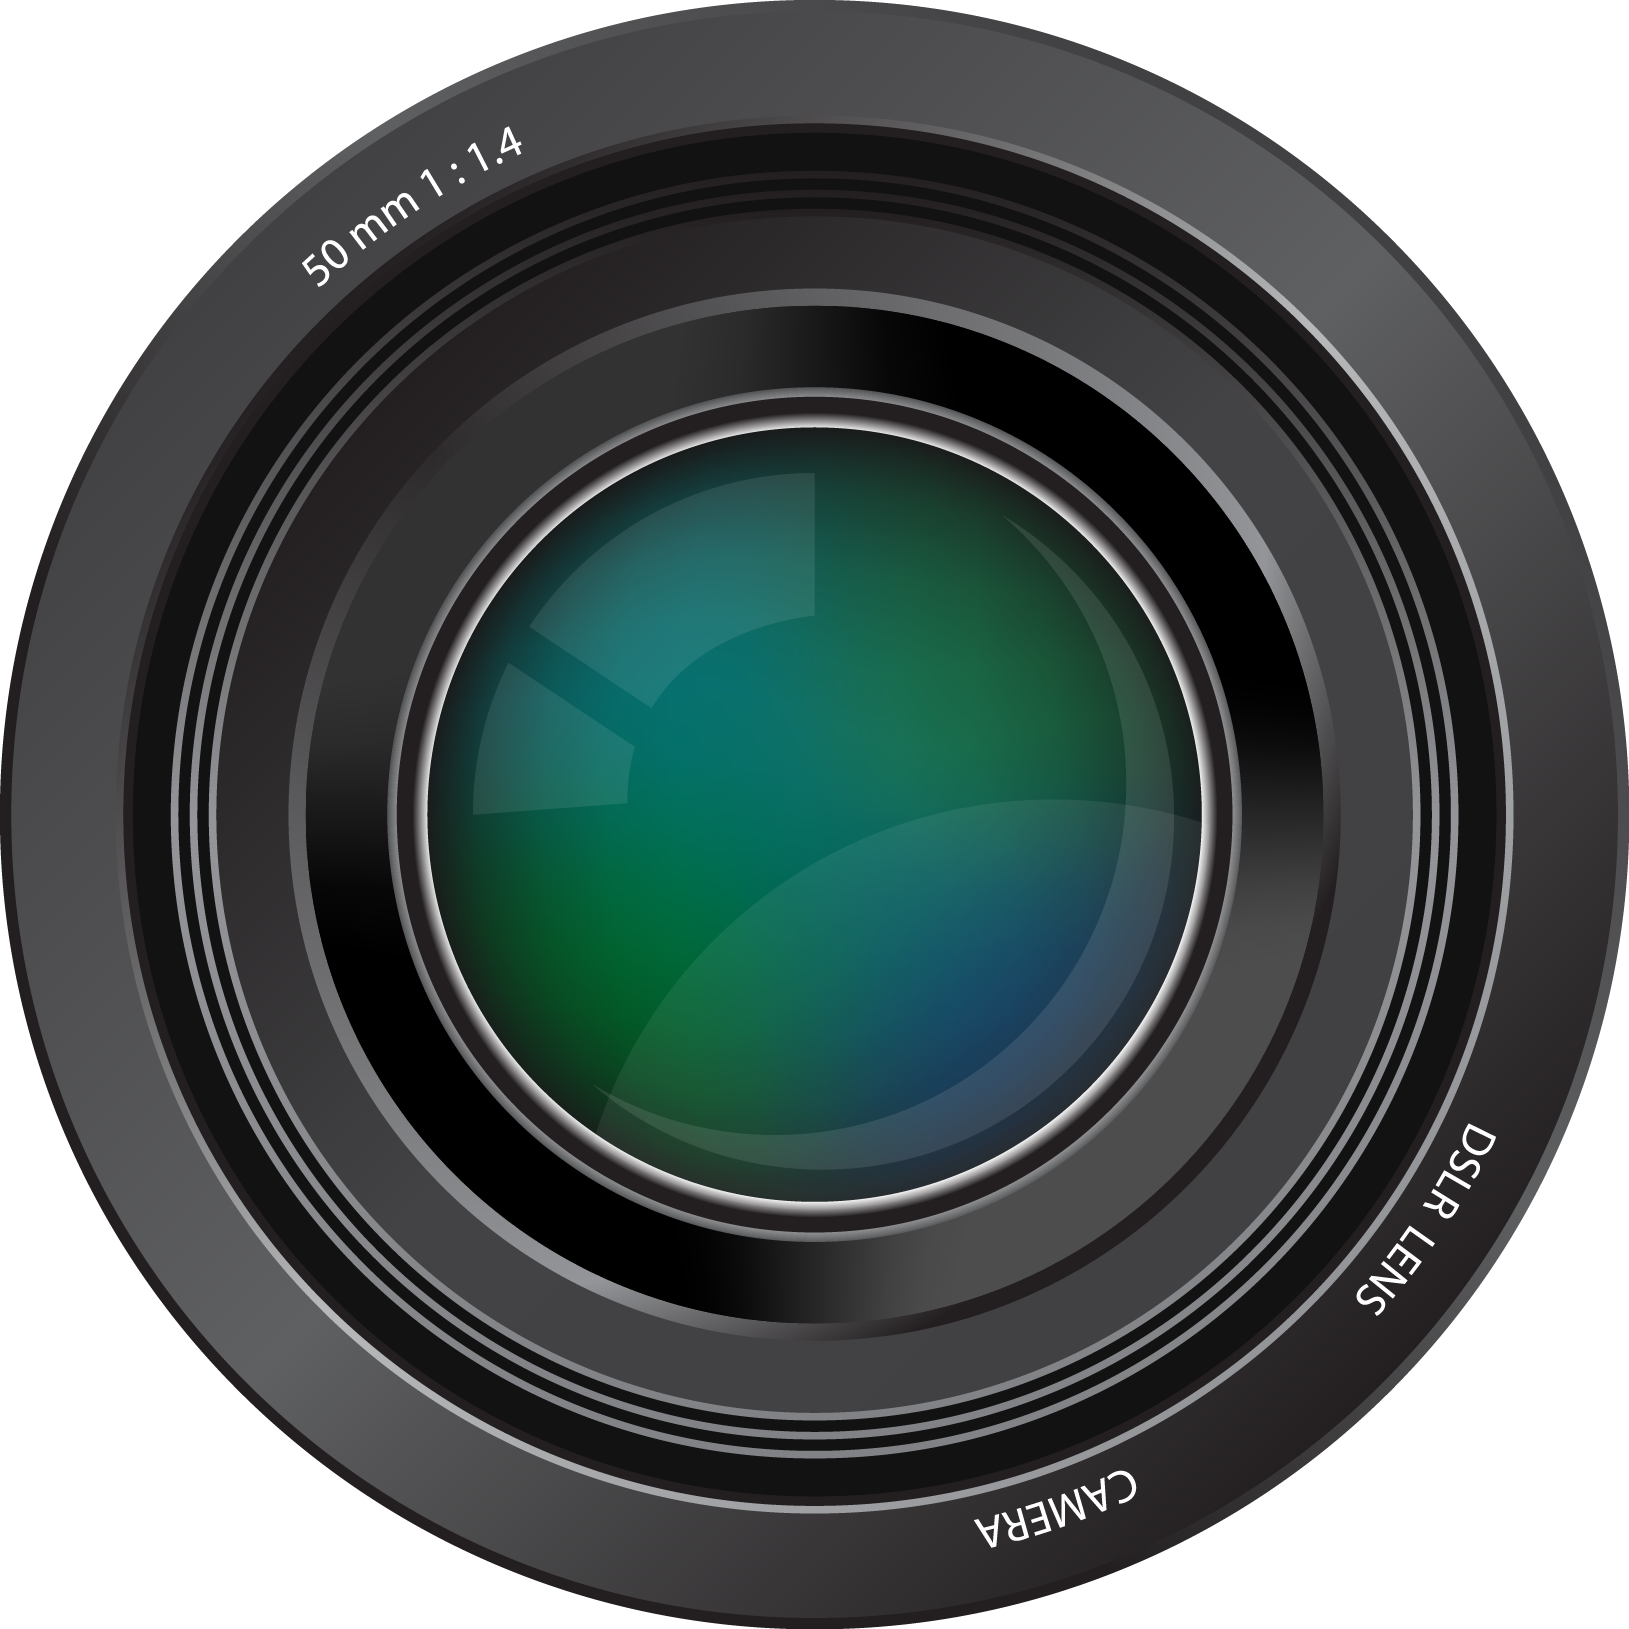 Free camera lens clipart svg library stock Camera lens free to use clip art - ClipartBarn svg library stock